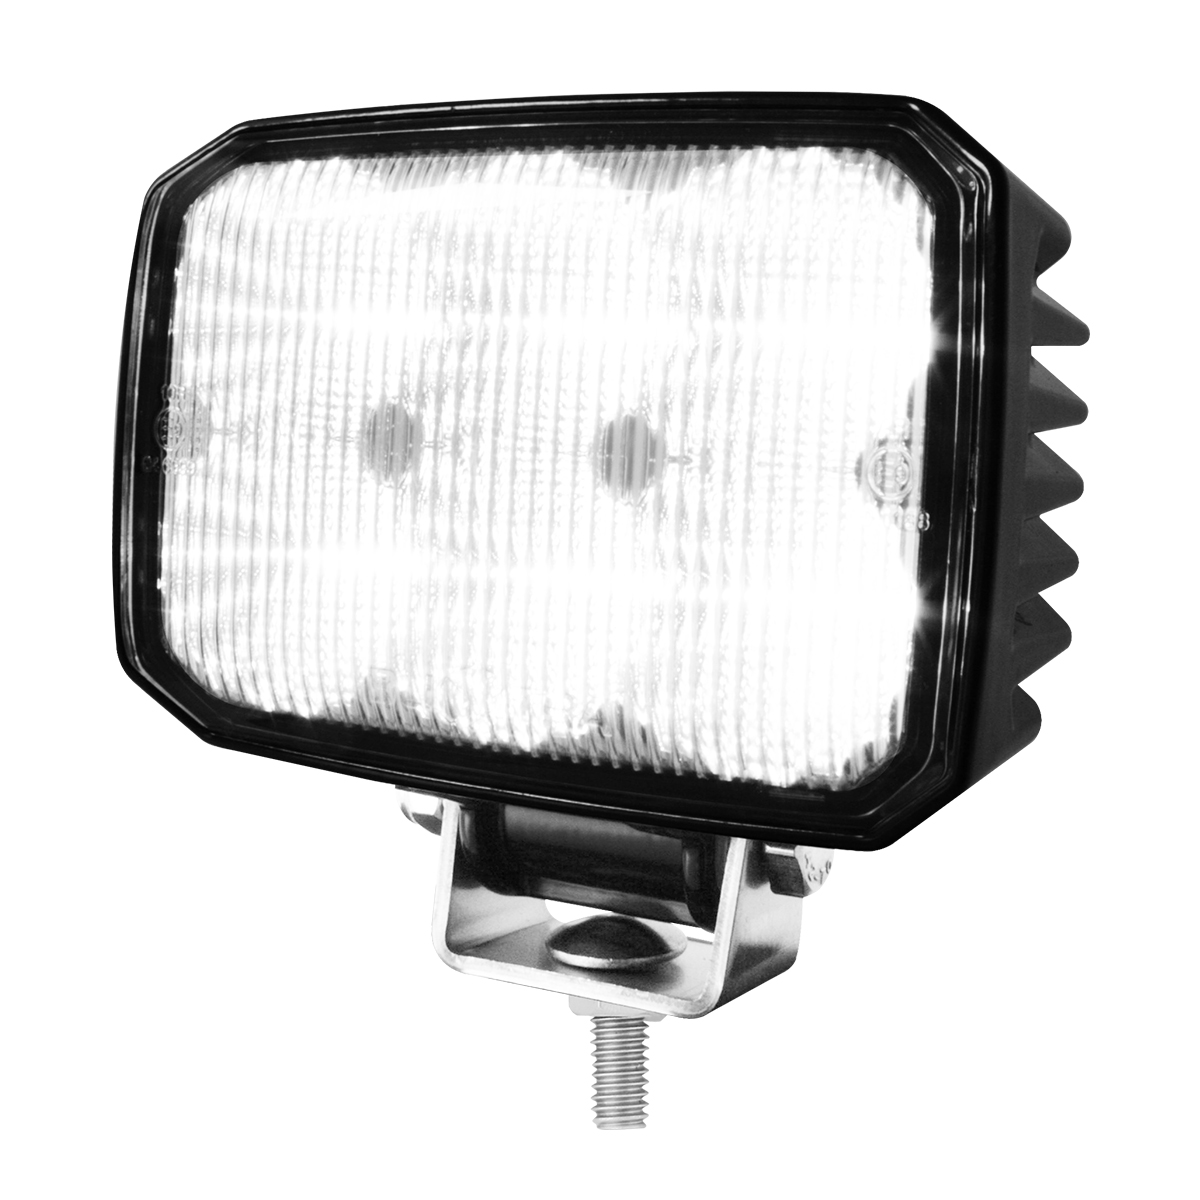 76361 Medium High Power LED Flood Light